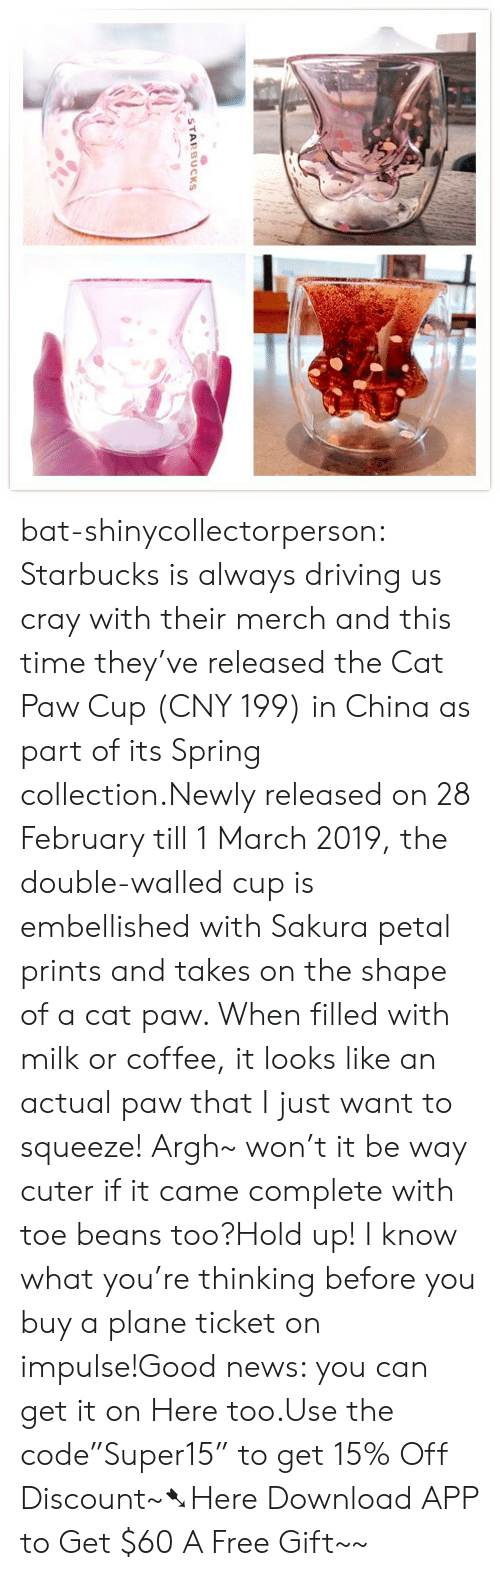 """Driving, News, and Starbucks: STARBUCKS bat-shinycollectorperson:  Starbucks is always driving us cray with their merch and this time they've released the Cat Paw Cup (CNY 199) in China as part of its Spring collection.Newly released on 28 February till 1 March 2019, the double-walled cup is embellished with Sakura petal prints and takes on the shape of a cat paw. When filled with milk or coffee, it looks like an actual paw that I just want to squeeze! Argh~ won't it be way cuter if it came complete with toe beans too?Hold up! I know what you're thinking before you buy a plane ticket on impulse!Good news: you can get it on Here too.Use the code""""Super15"""" to get 15% Off Discount~➷Here Download APP to Get $60  A Free Gift~~"""